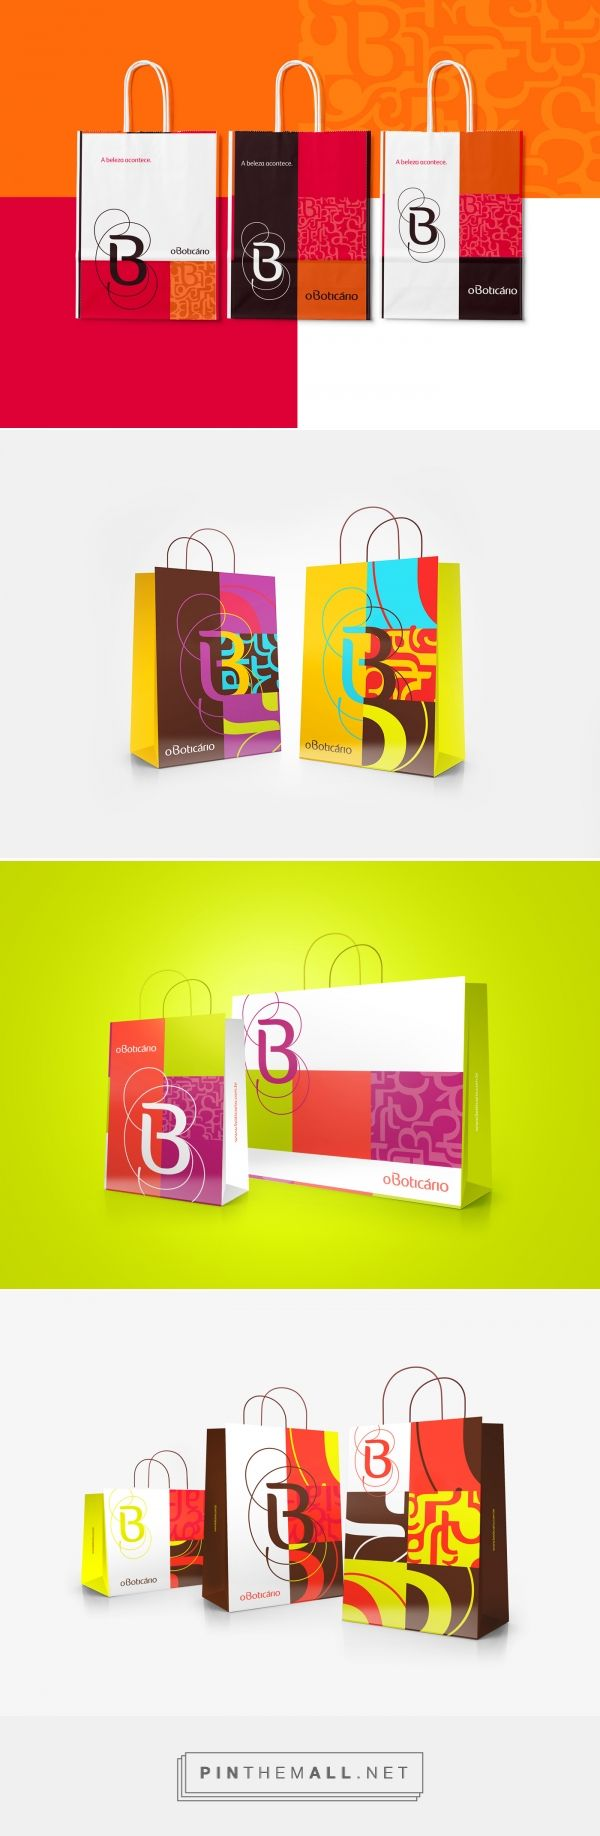 O Boticário Shopping Bags on Behance by Nelson Balaban Curitiba, Brazil curated by Packaging Diva PD. Shopping bags with a playful, colorful approach of the brand's symbol and pattern. Graphic design, packaging.